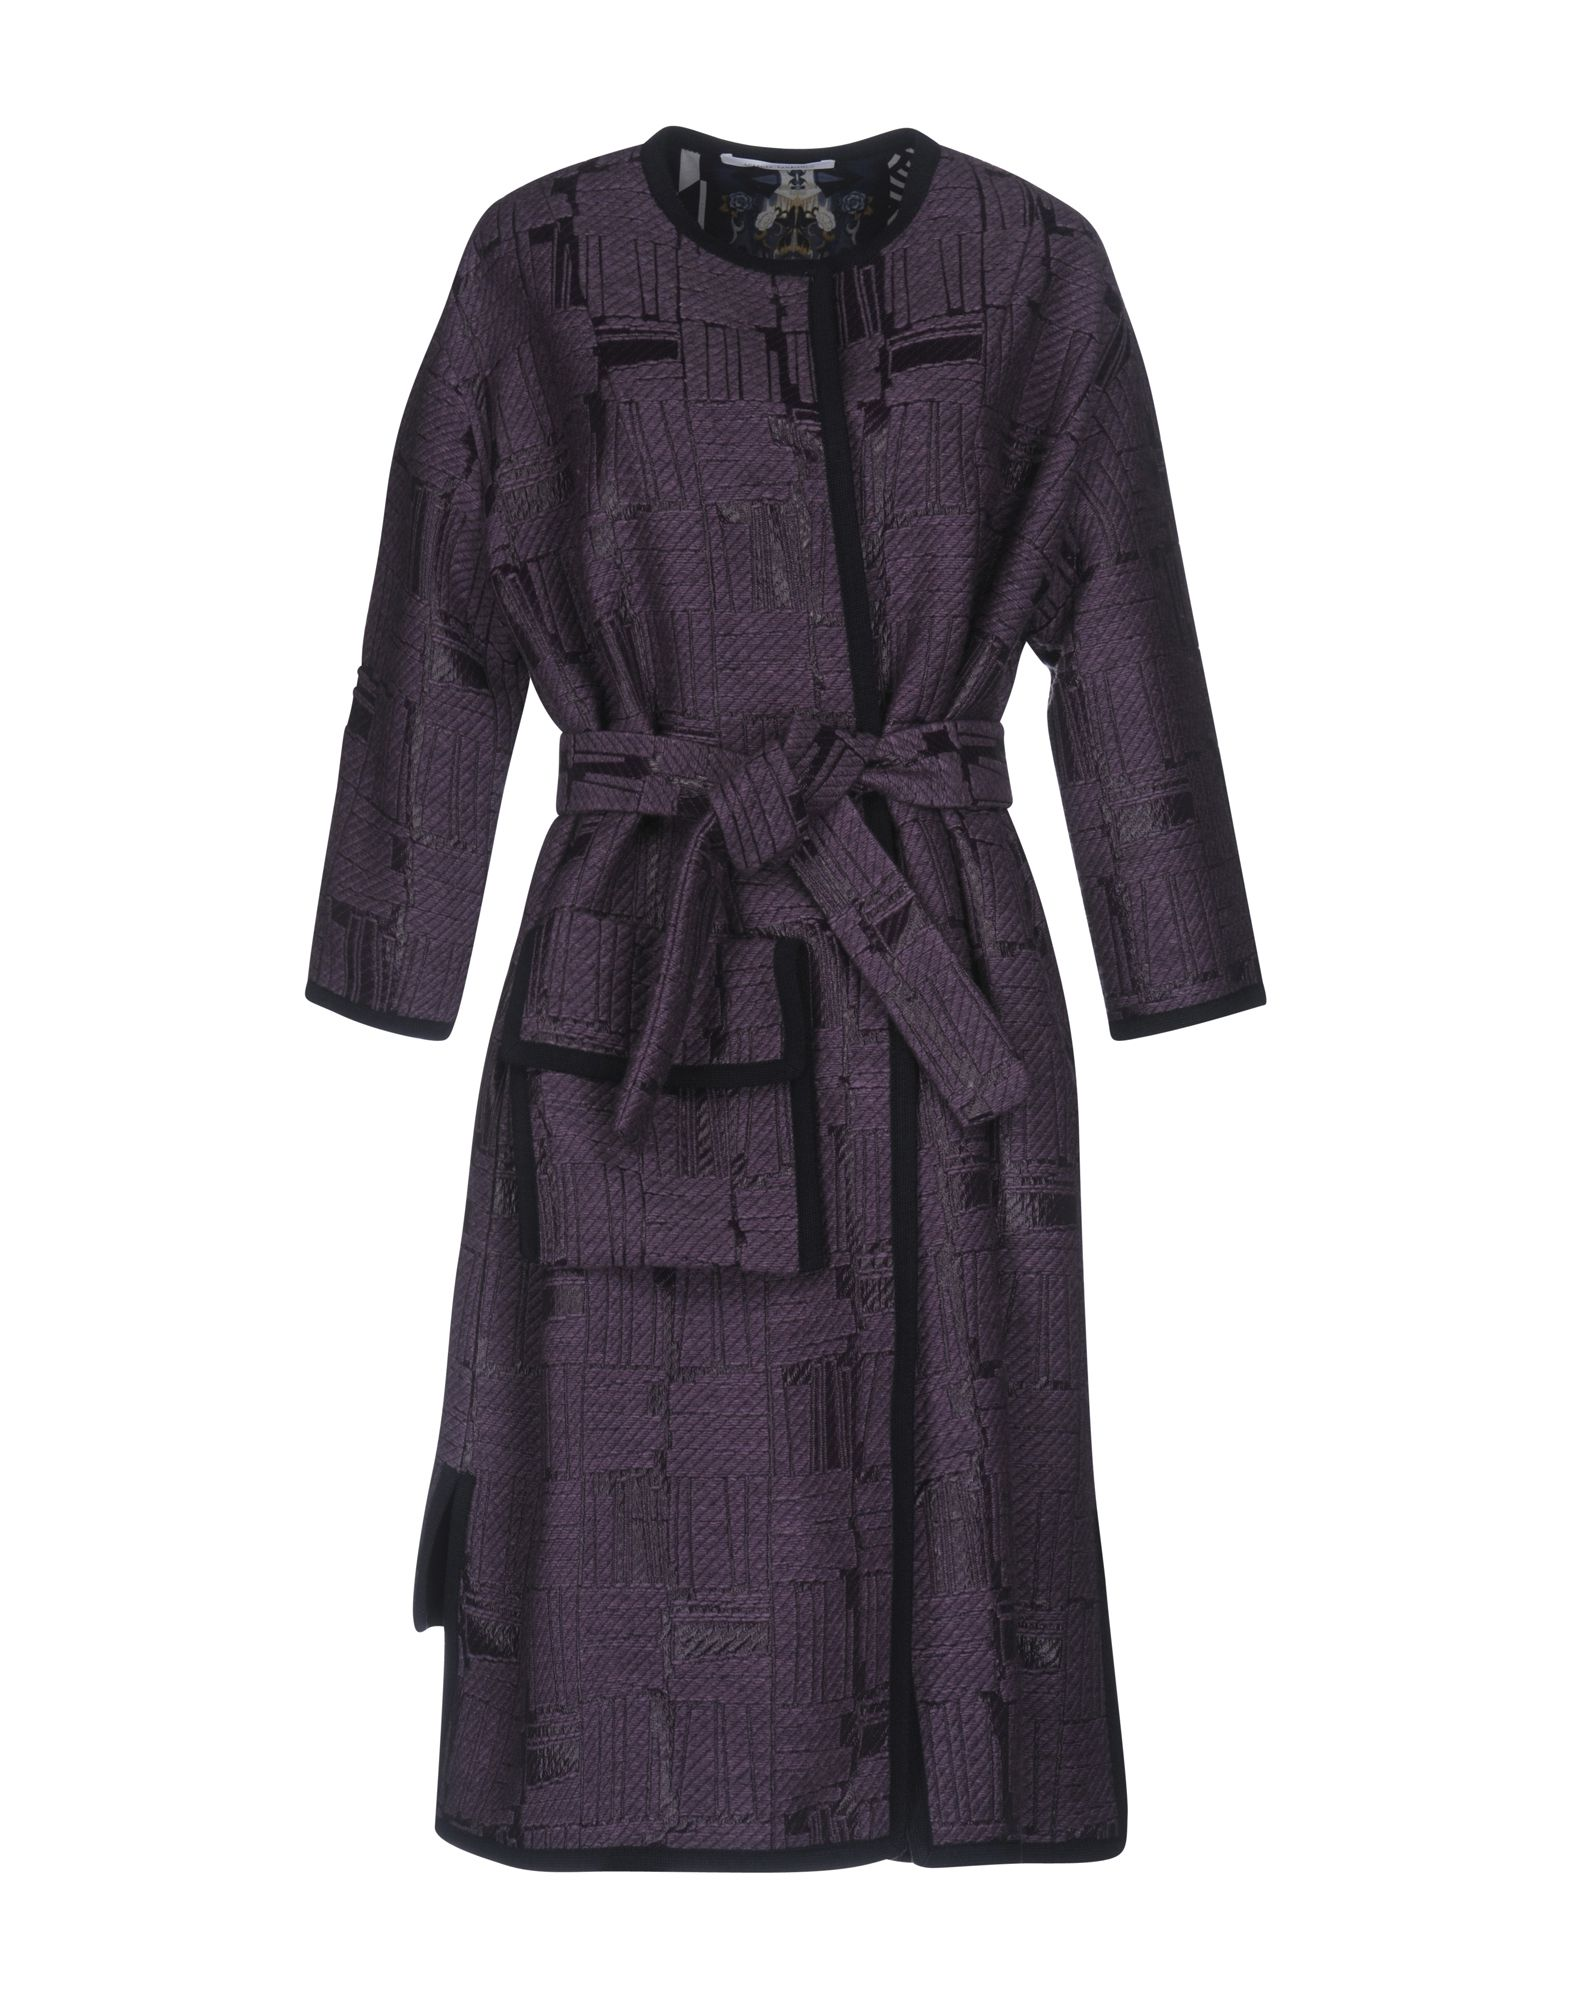 LORENZA PAMBIANCO Belted Coats in Light Purple